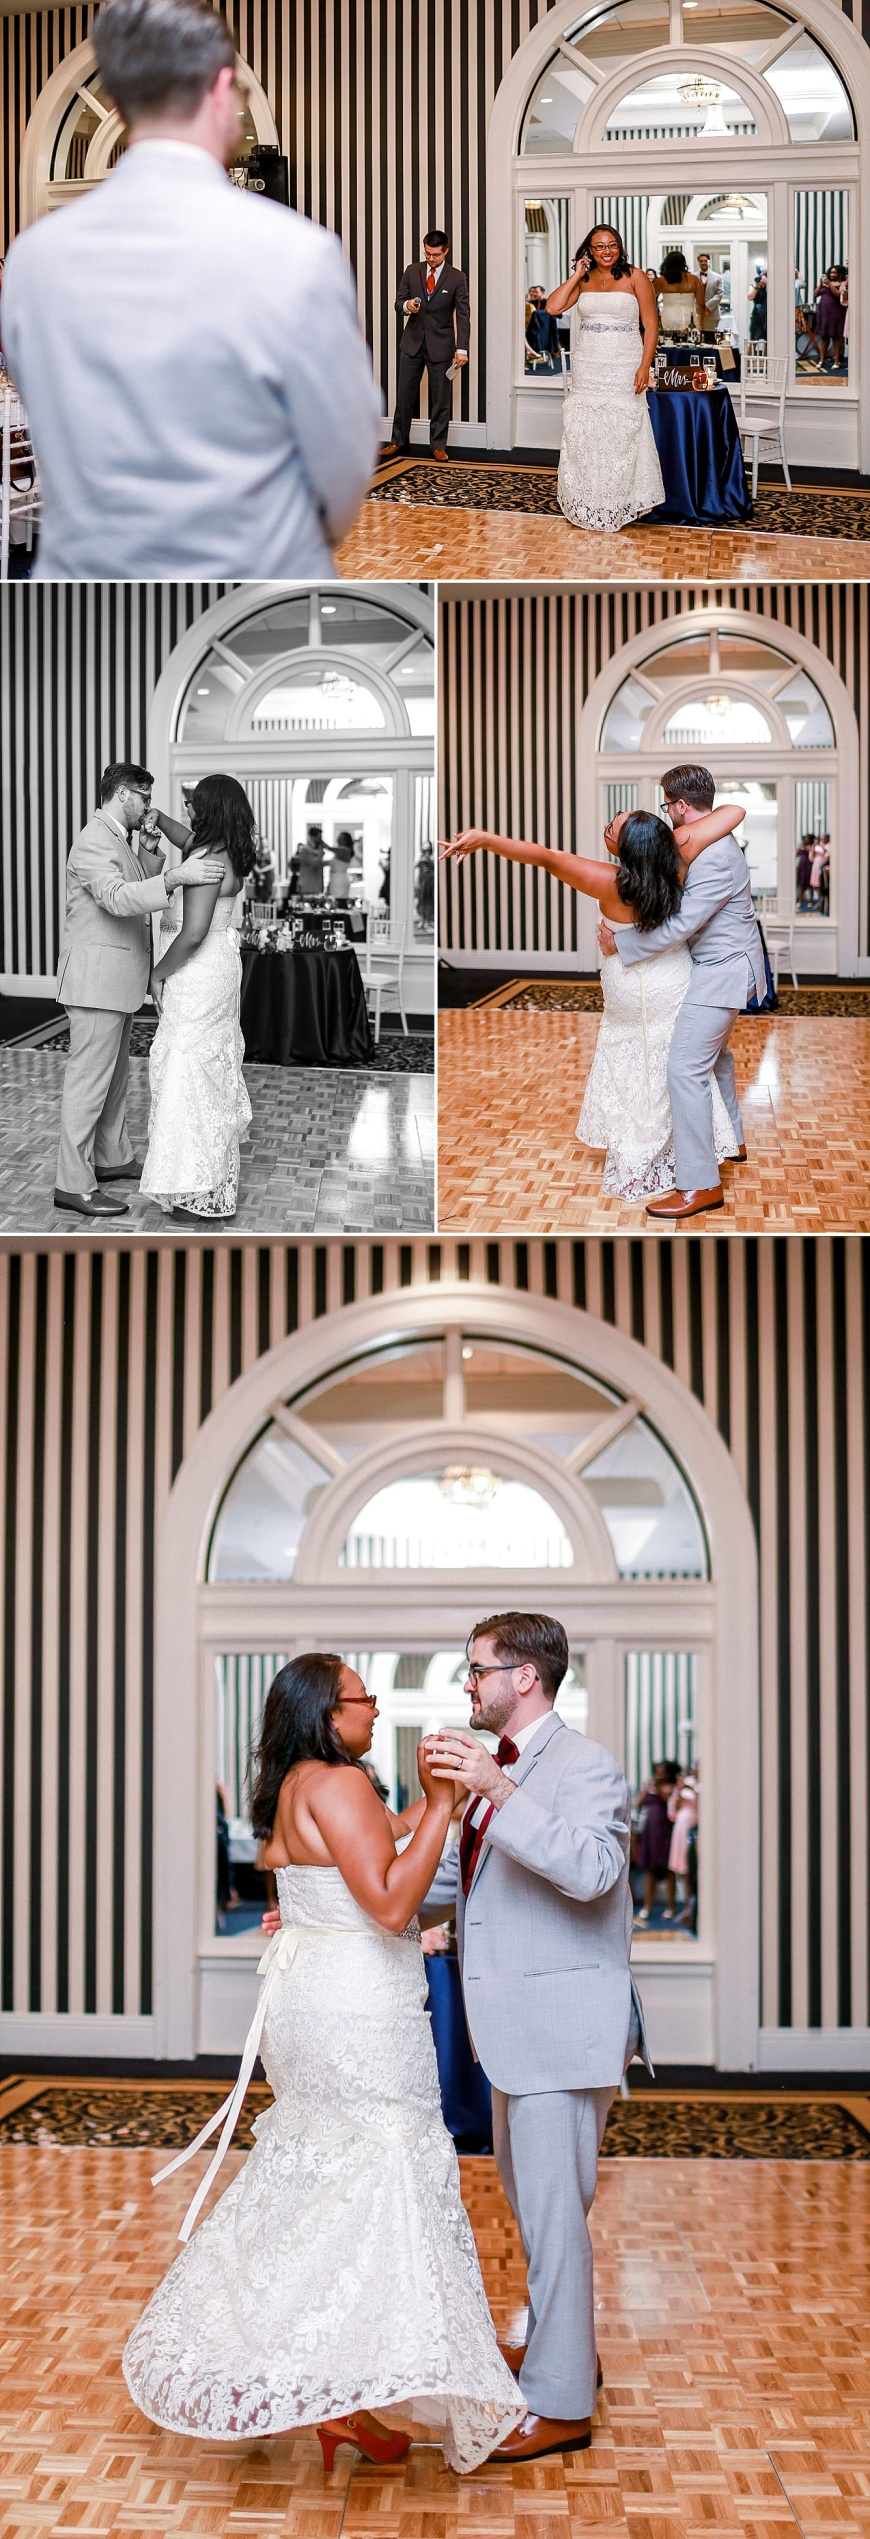 Hotel-Shattuck-Downtown-Berkeley-Wedding-Photographer_1083.jpg